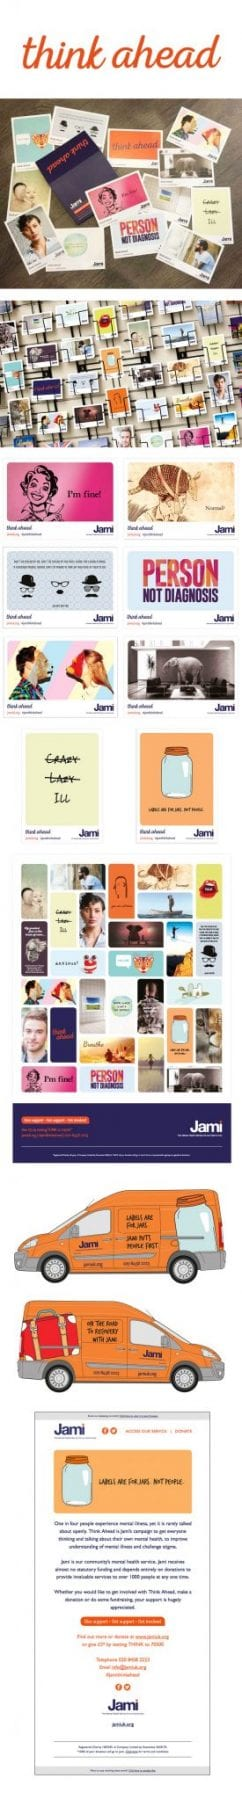 Image of Jami think again campaign designed by graphic designer and branding designer Jessica Croome of Perth WA